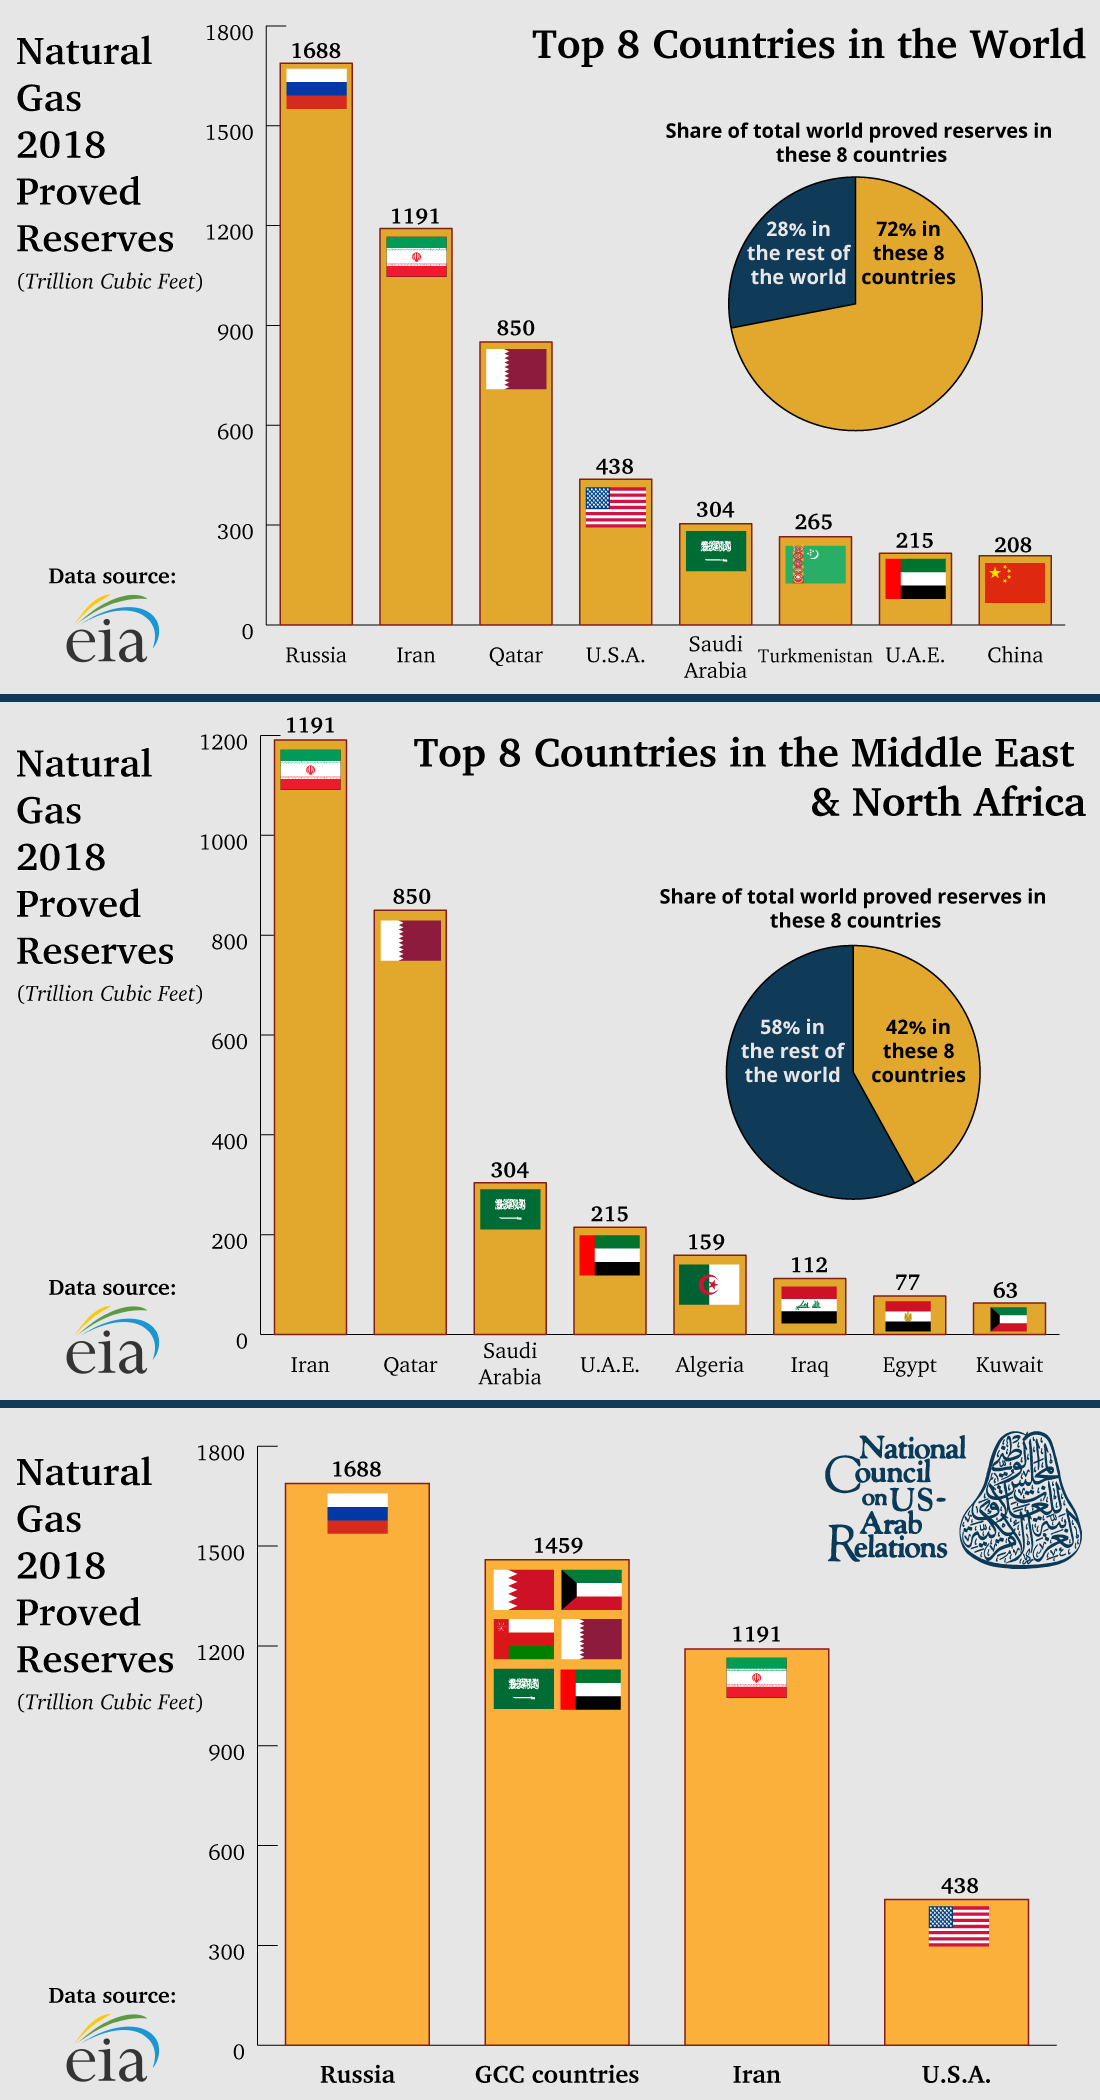 Comparison of Natural Gas Reserves